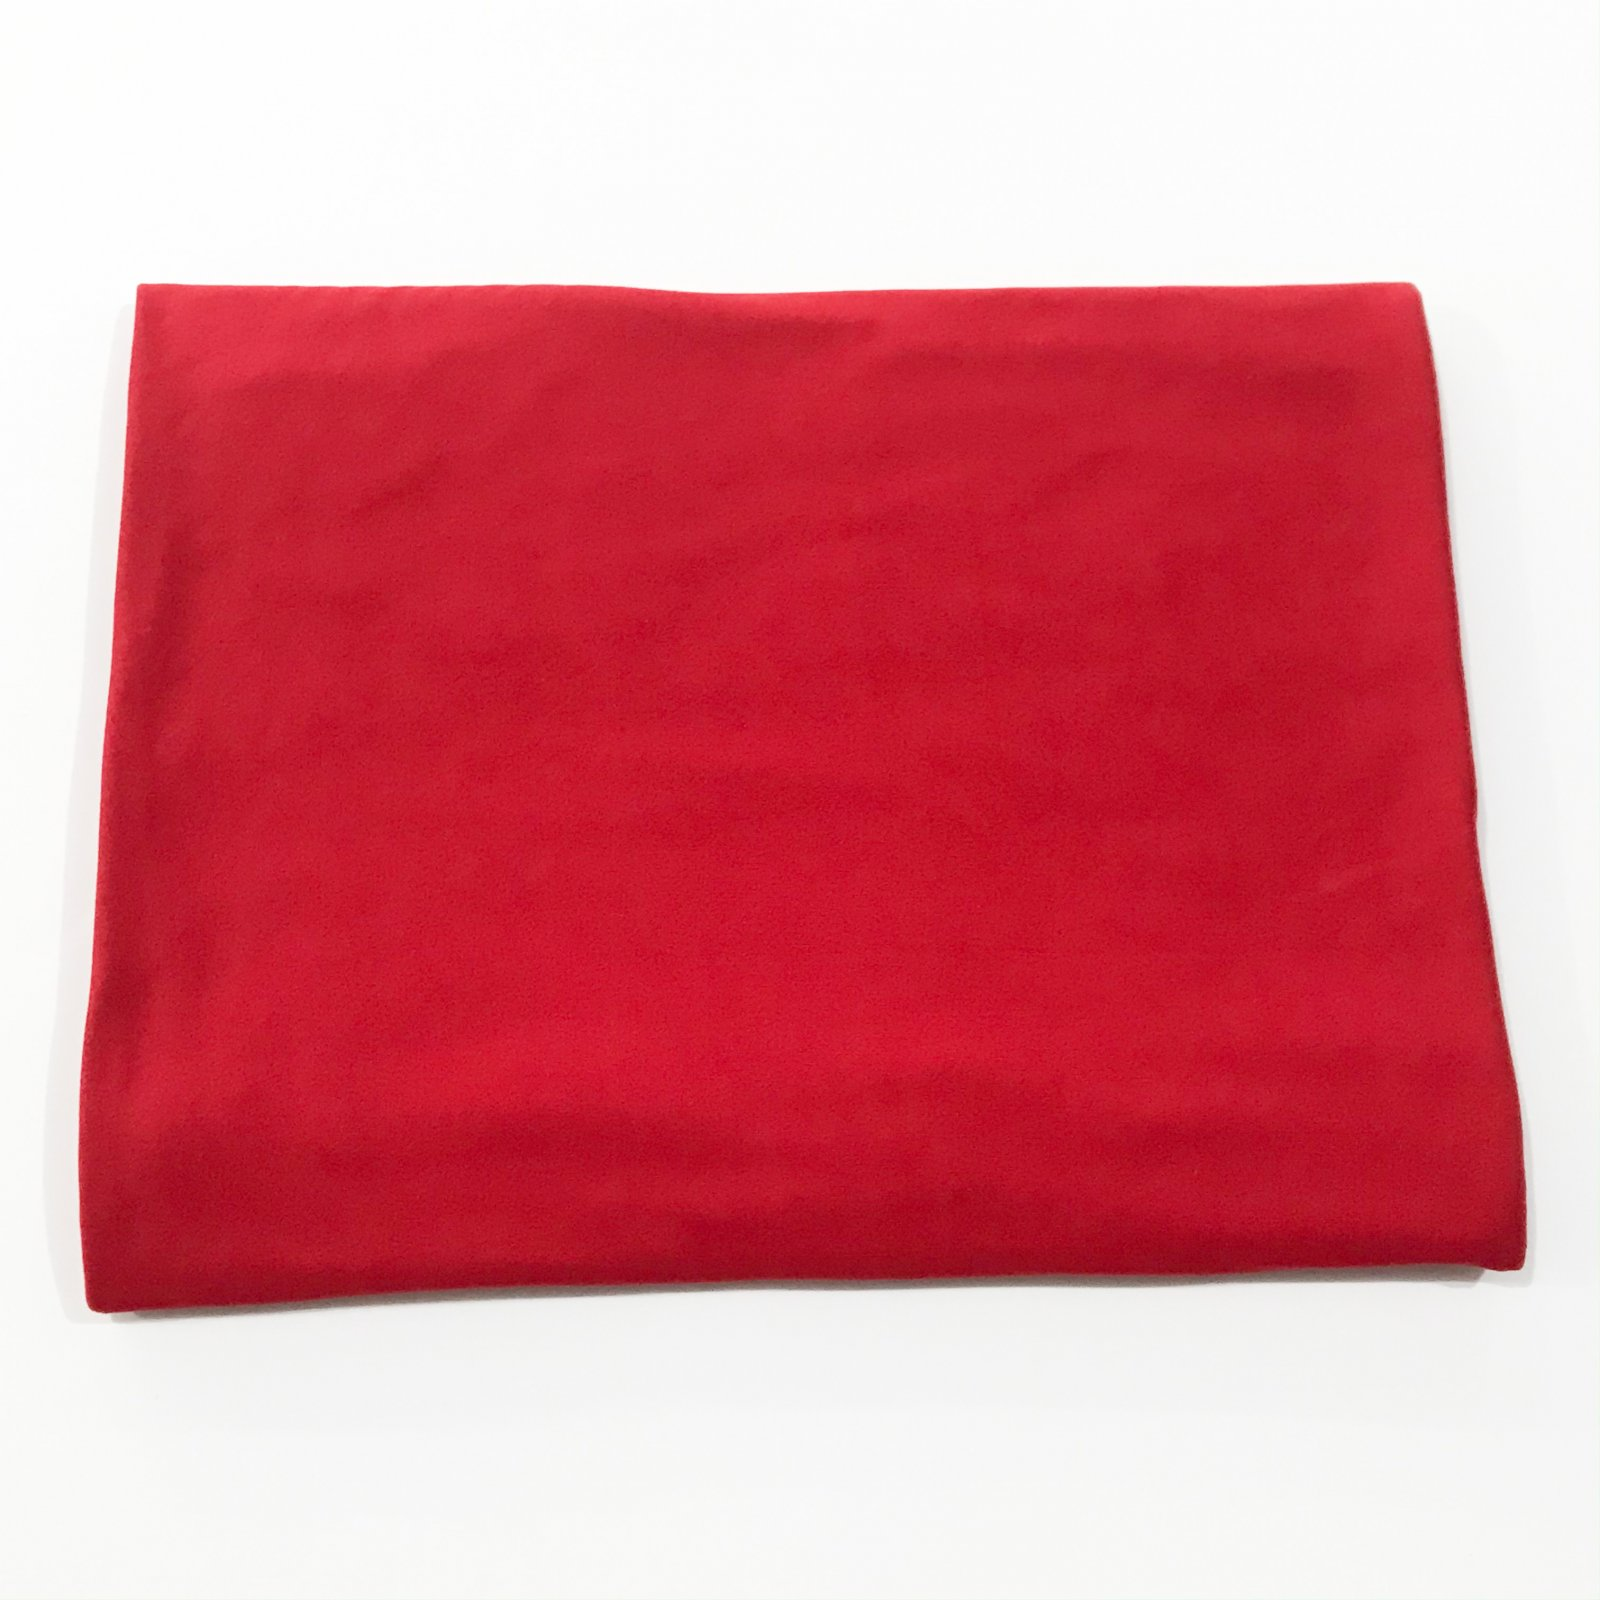 Solid Red Double Brushed Jersey - 1 1/2 yard